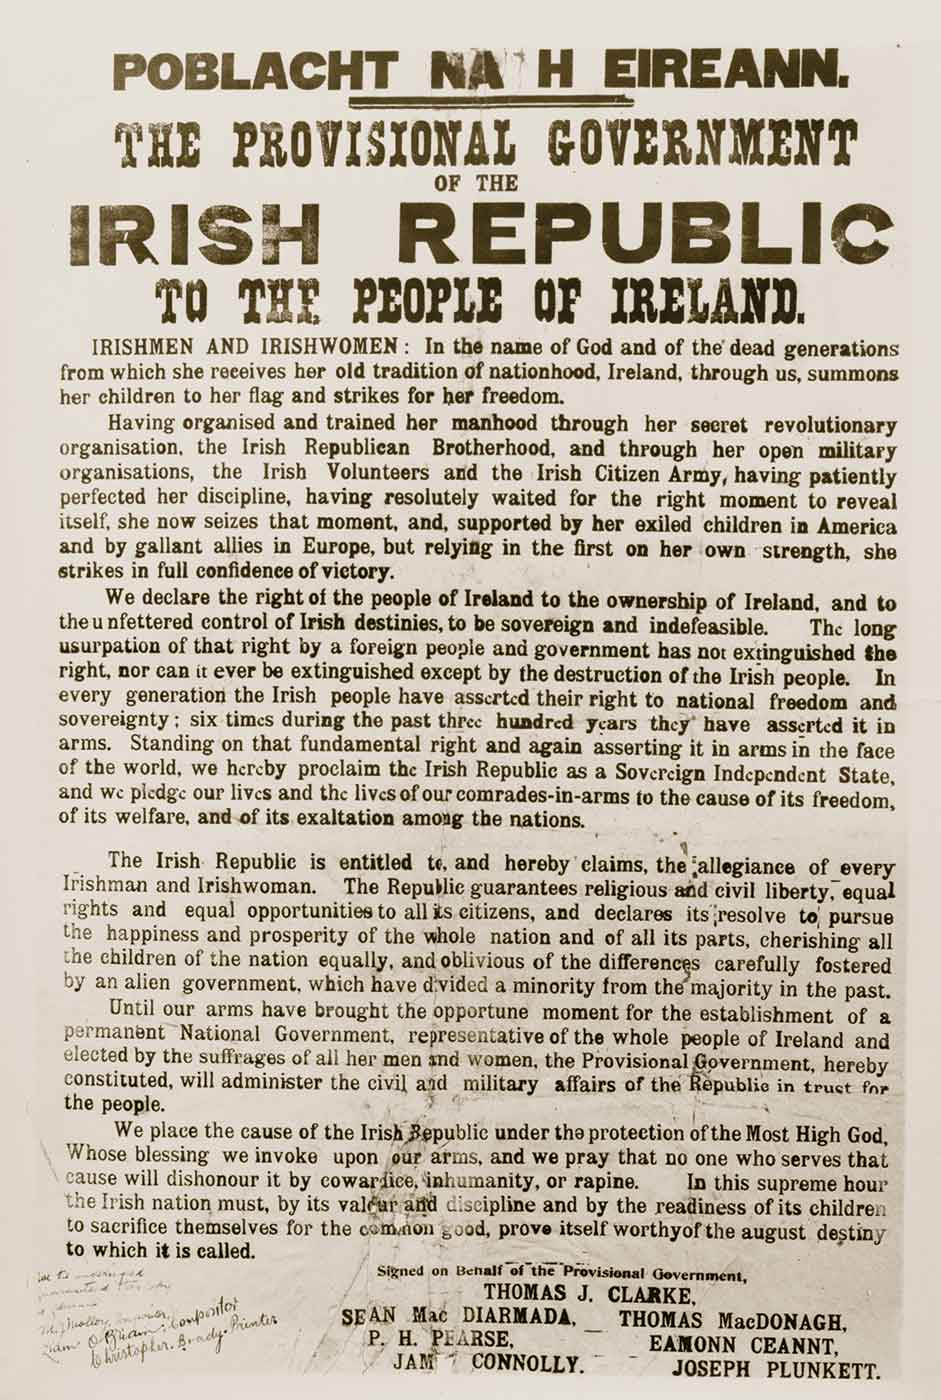 Old printed publication featuring text: THE PROVISIONAL GOVERNMENT OF THE IRISH REPUBLIC.